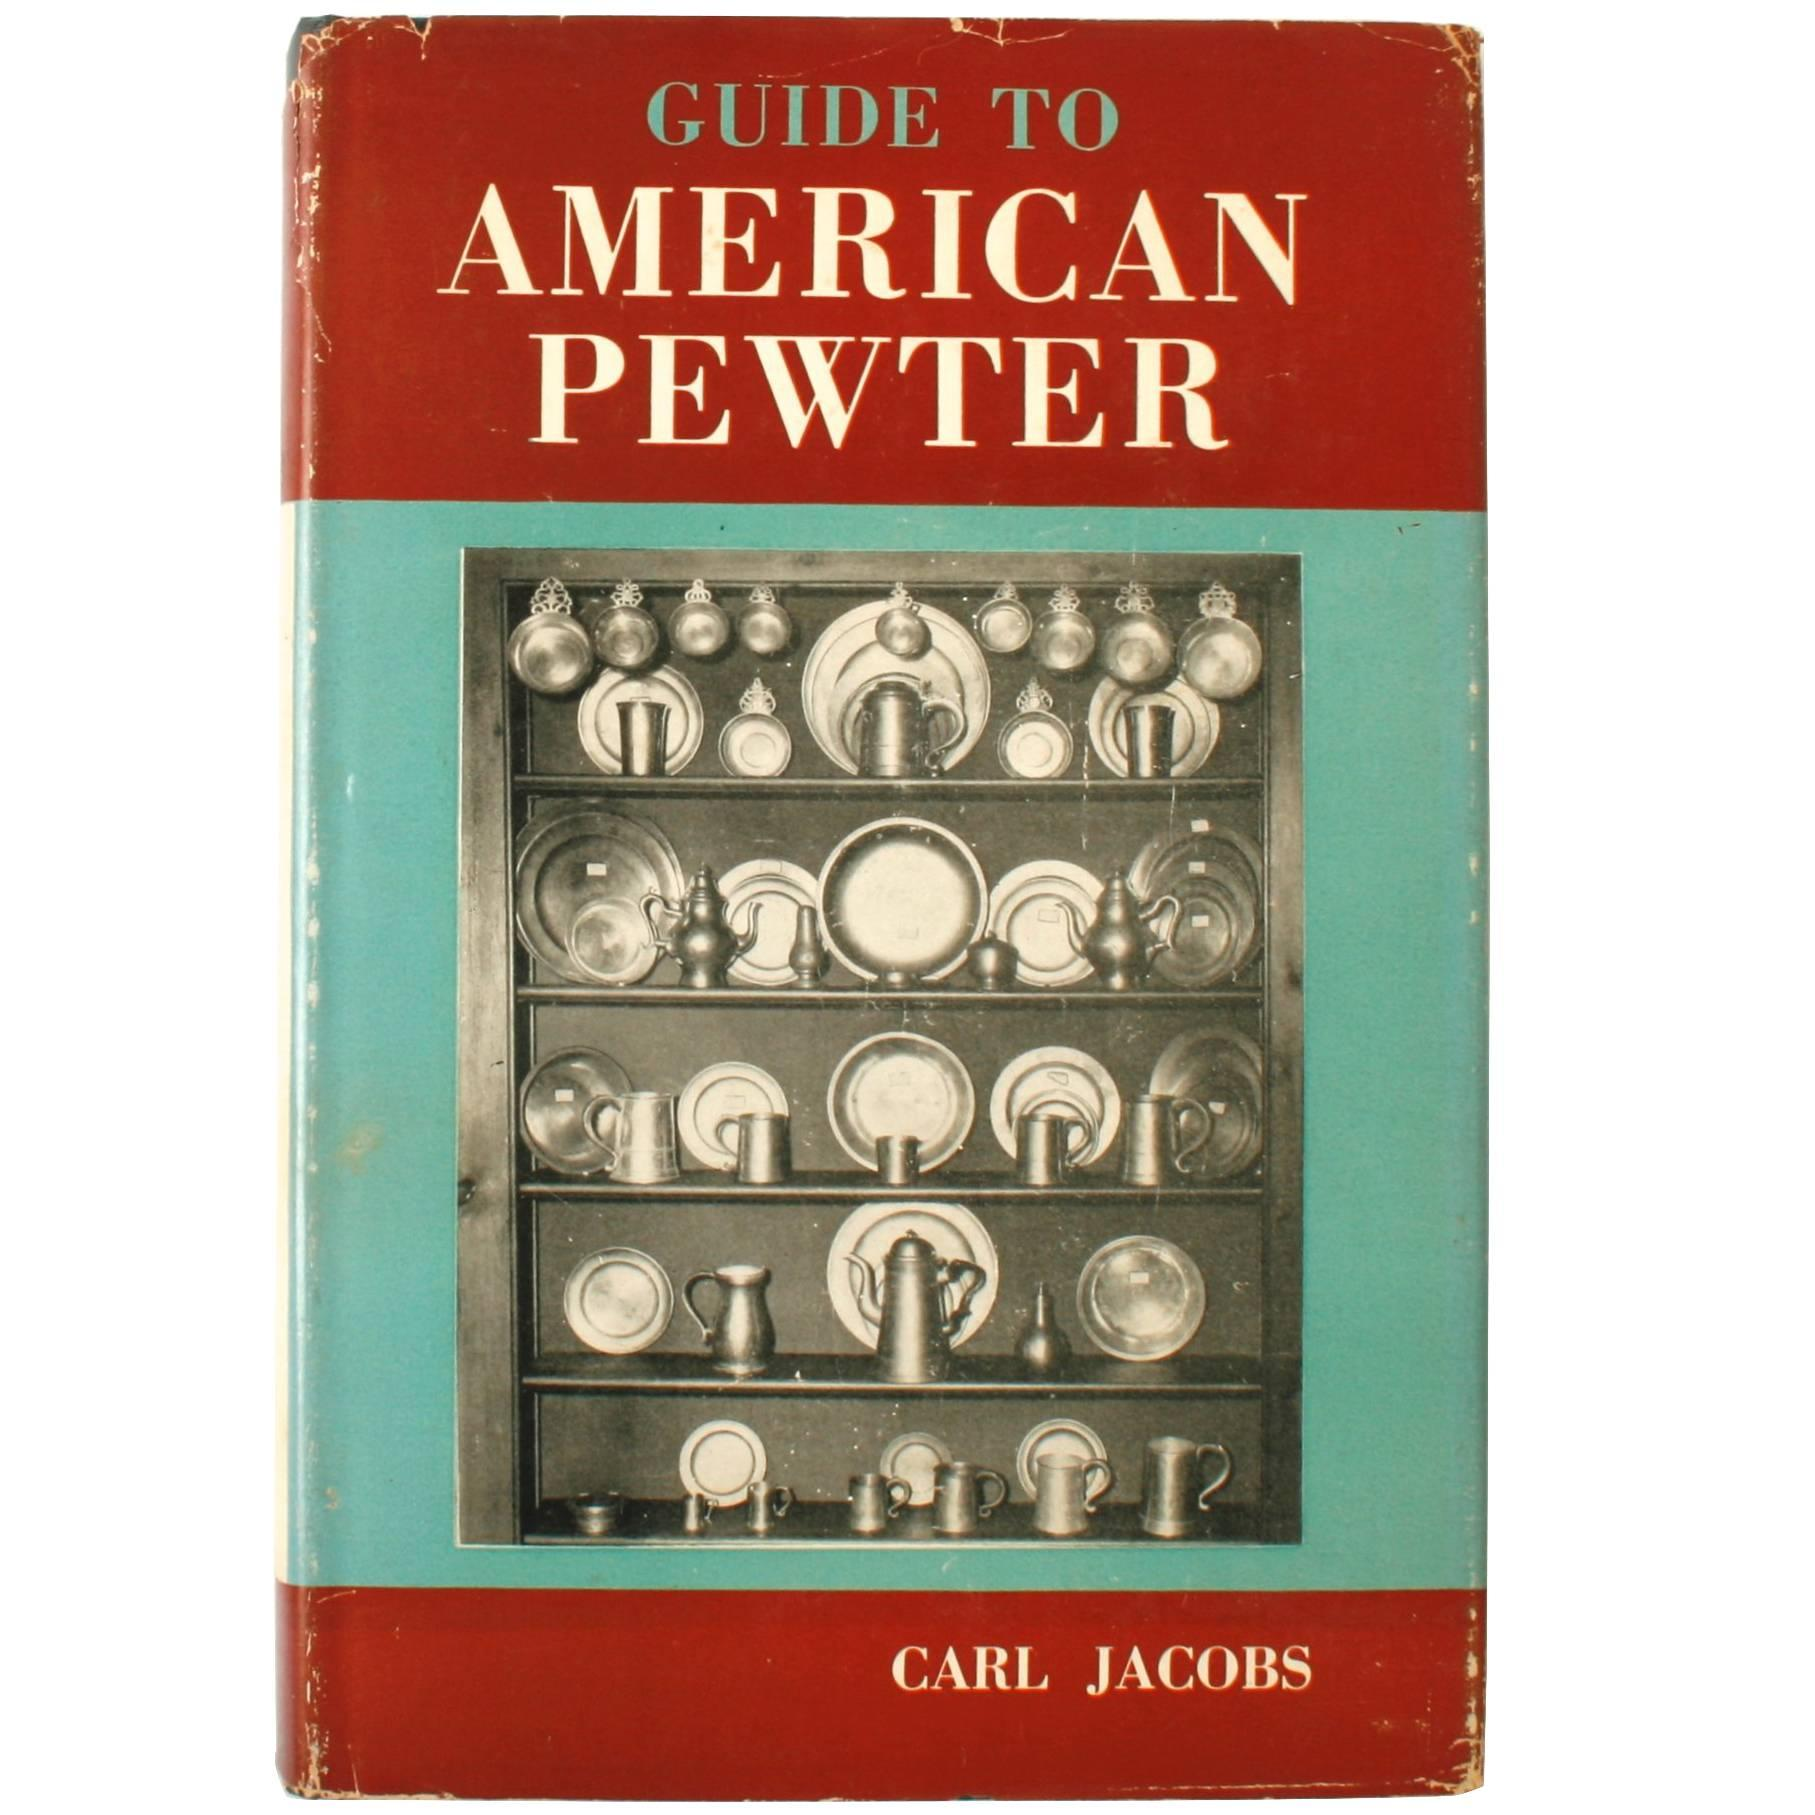 Guide to American Pewter by Carl Jacobs, First Edition